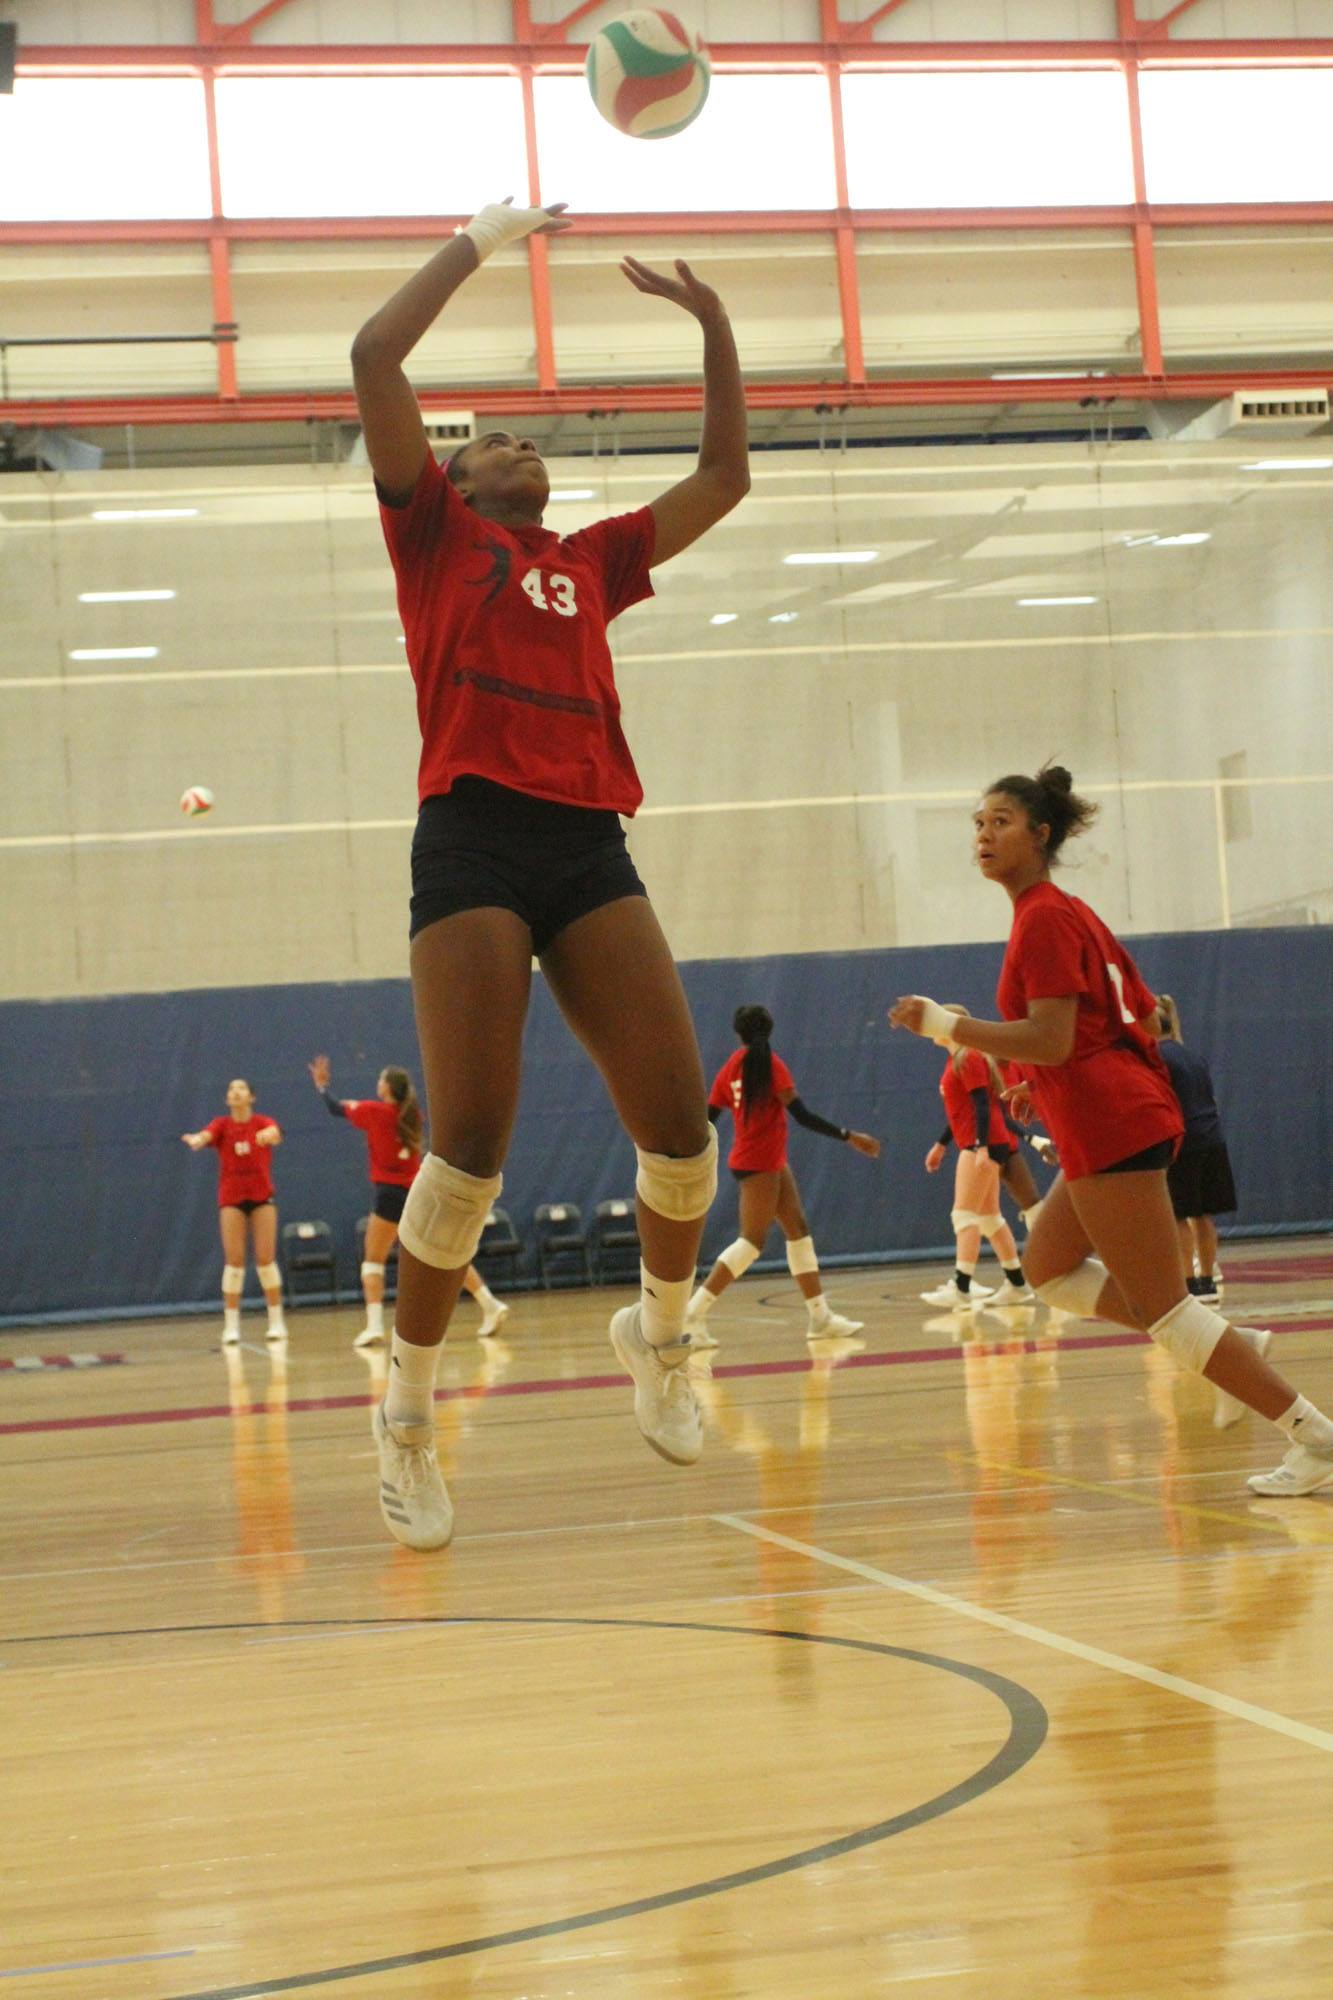 As a setter in volleyball you want to quickly bring both arms up in front of you and as your arms come up, bring them closer together. (USA Volleyball)